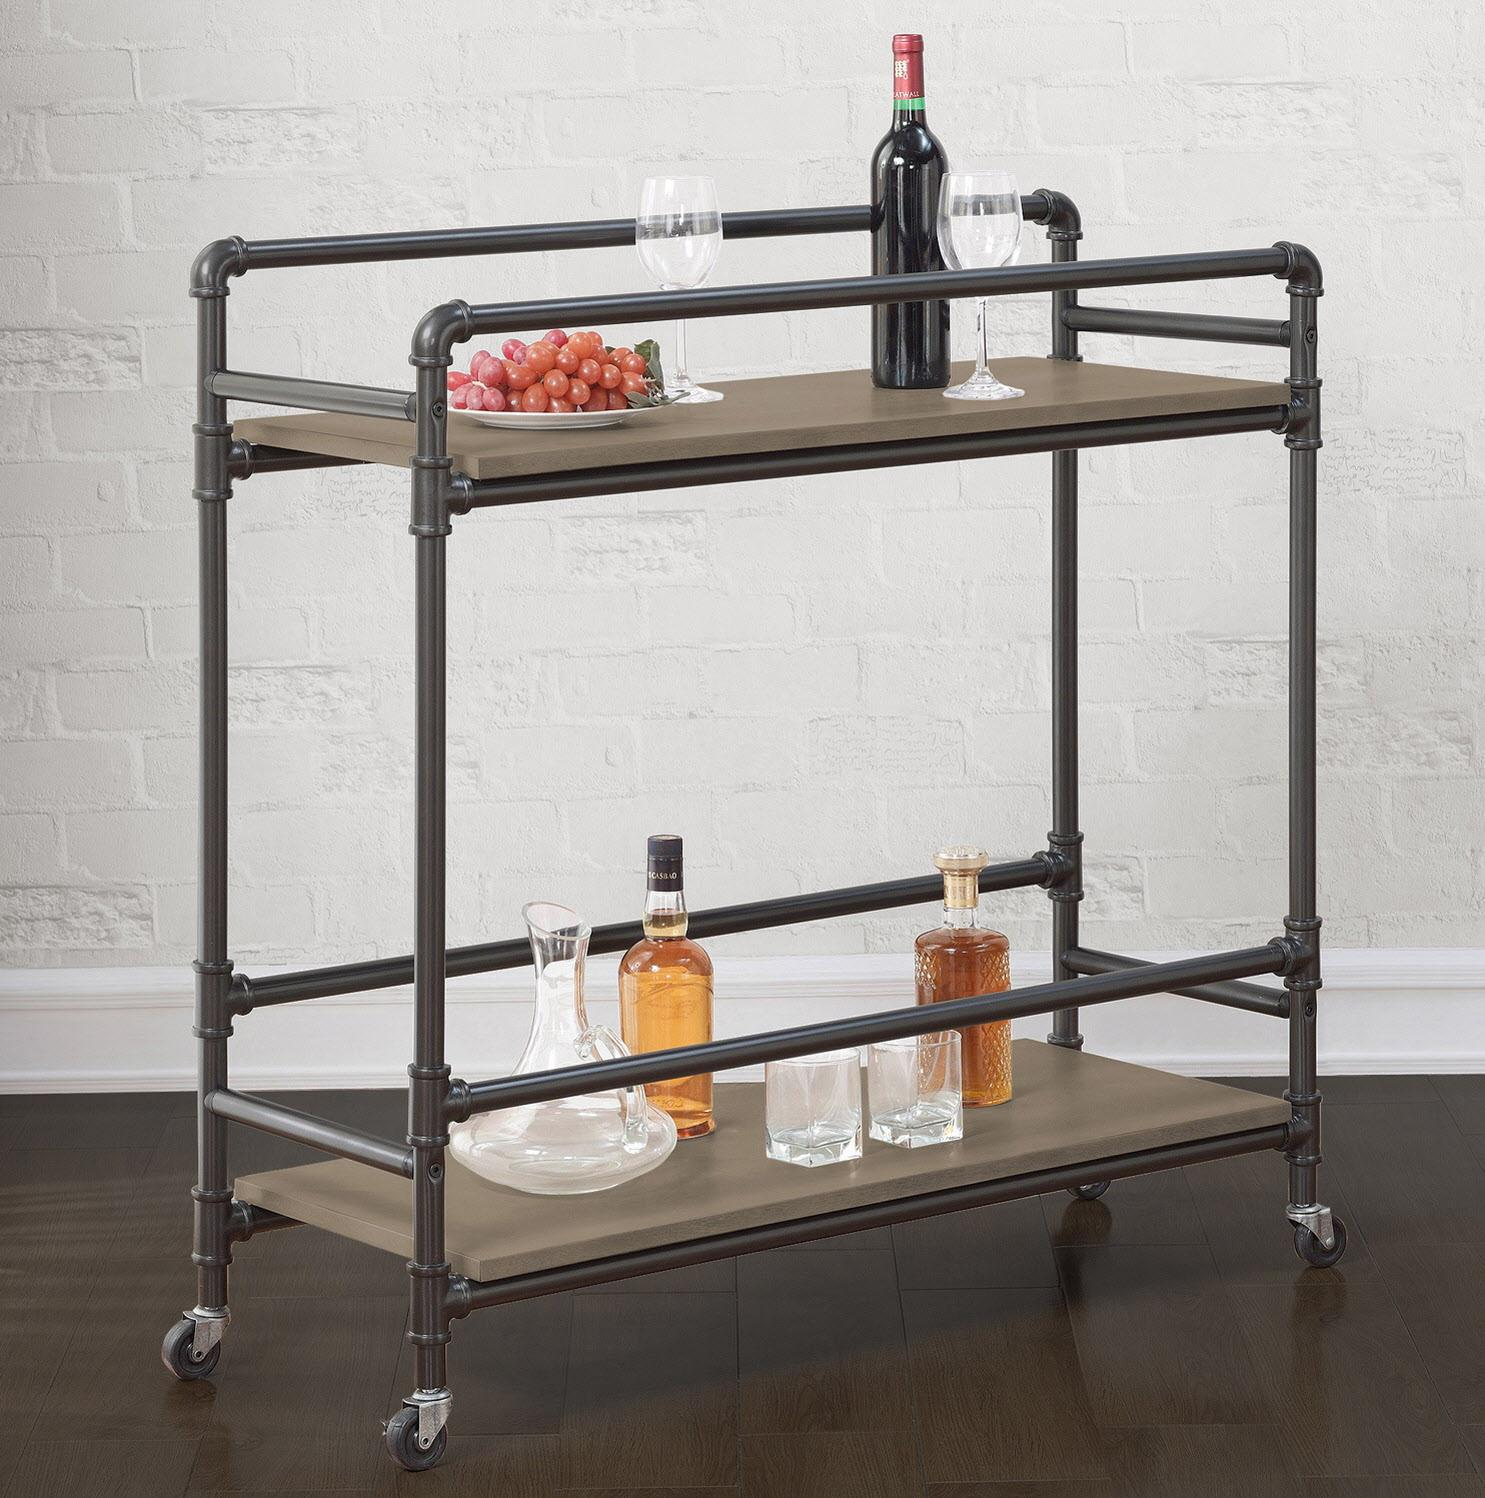 fresh11 - bar cart - Stockton Industrial Bar Cart, $219.99 at overstock.com.